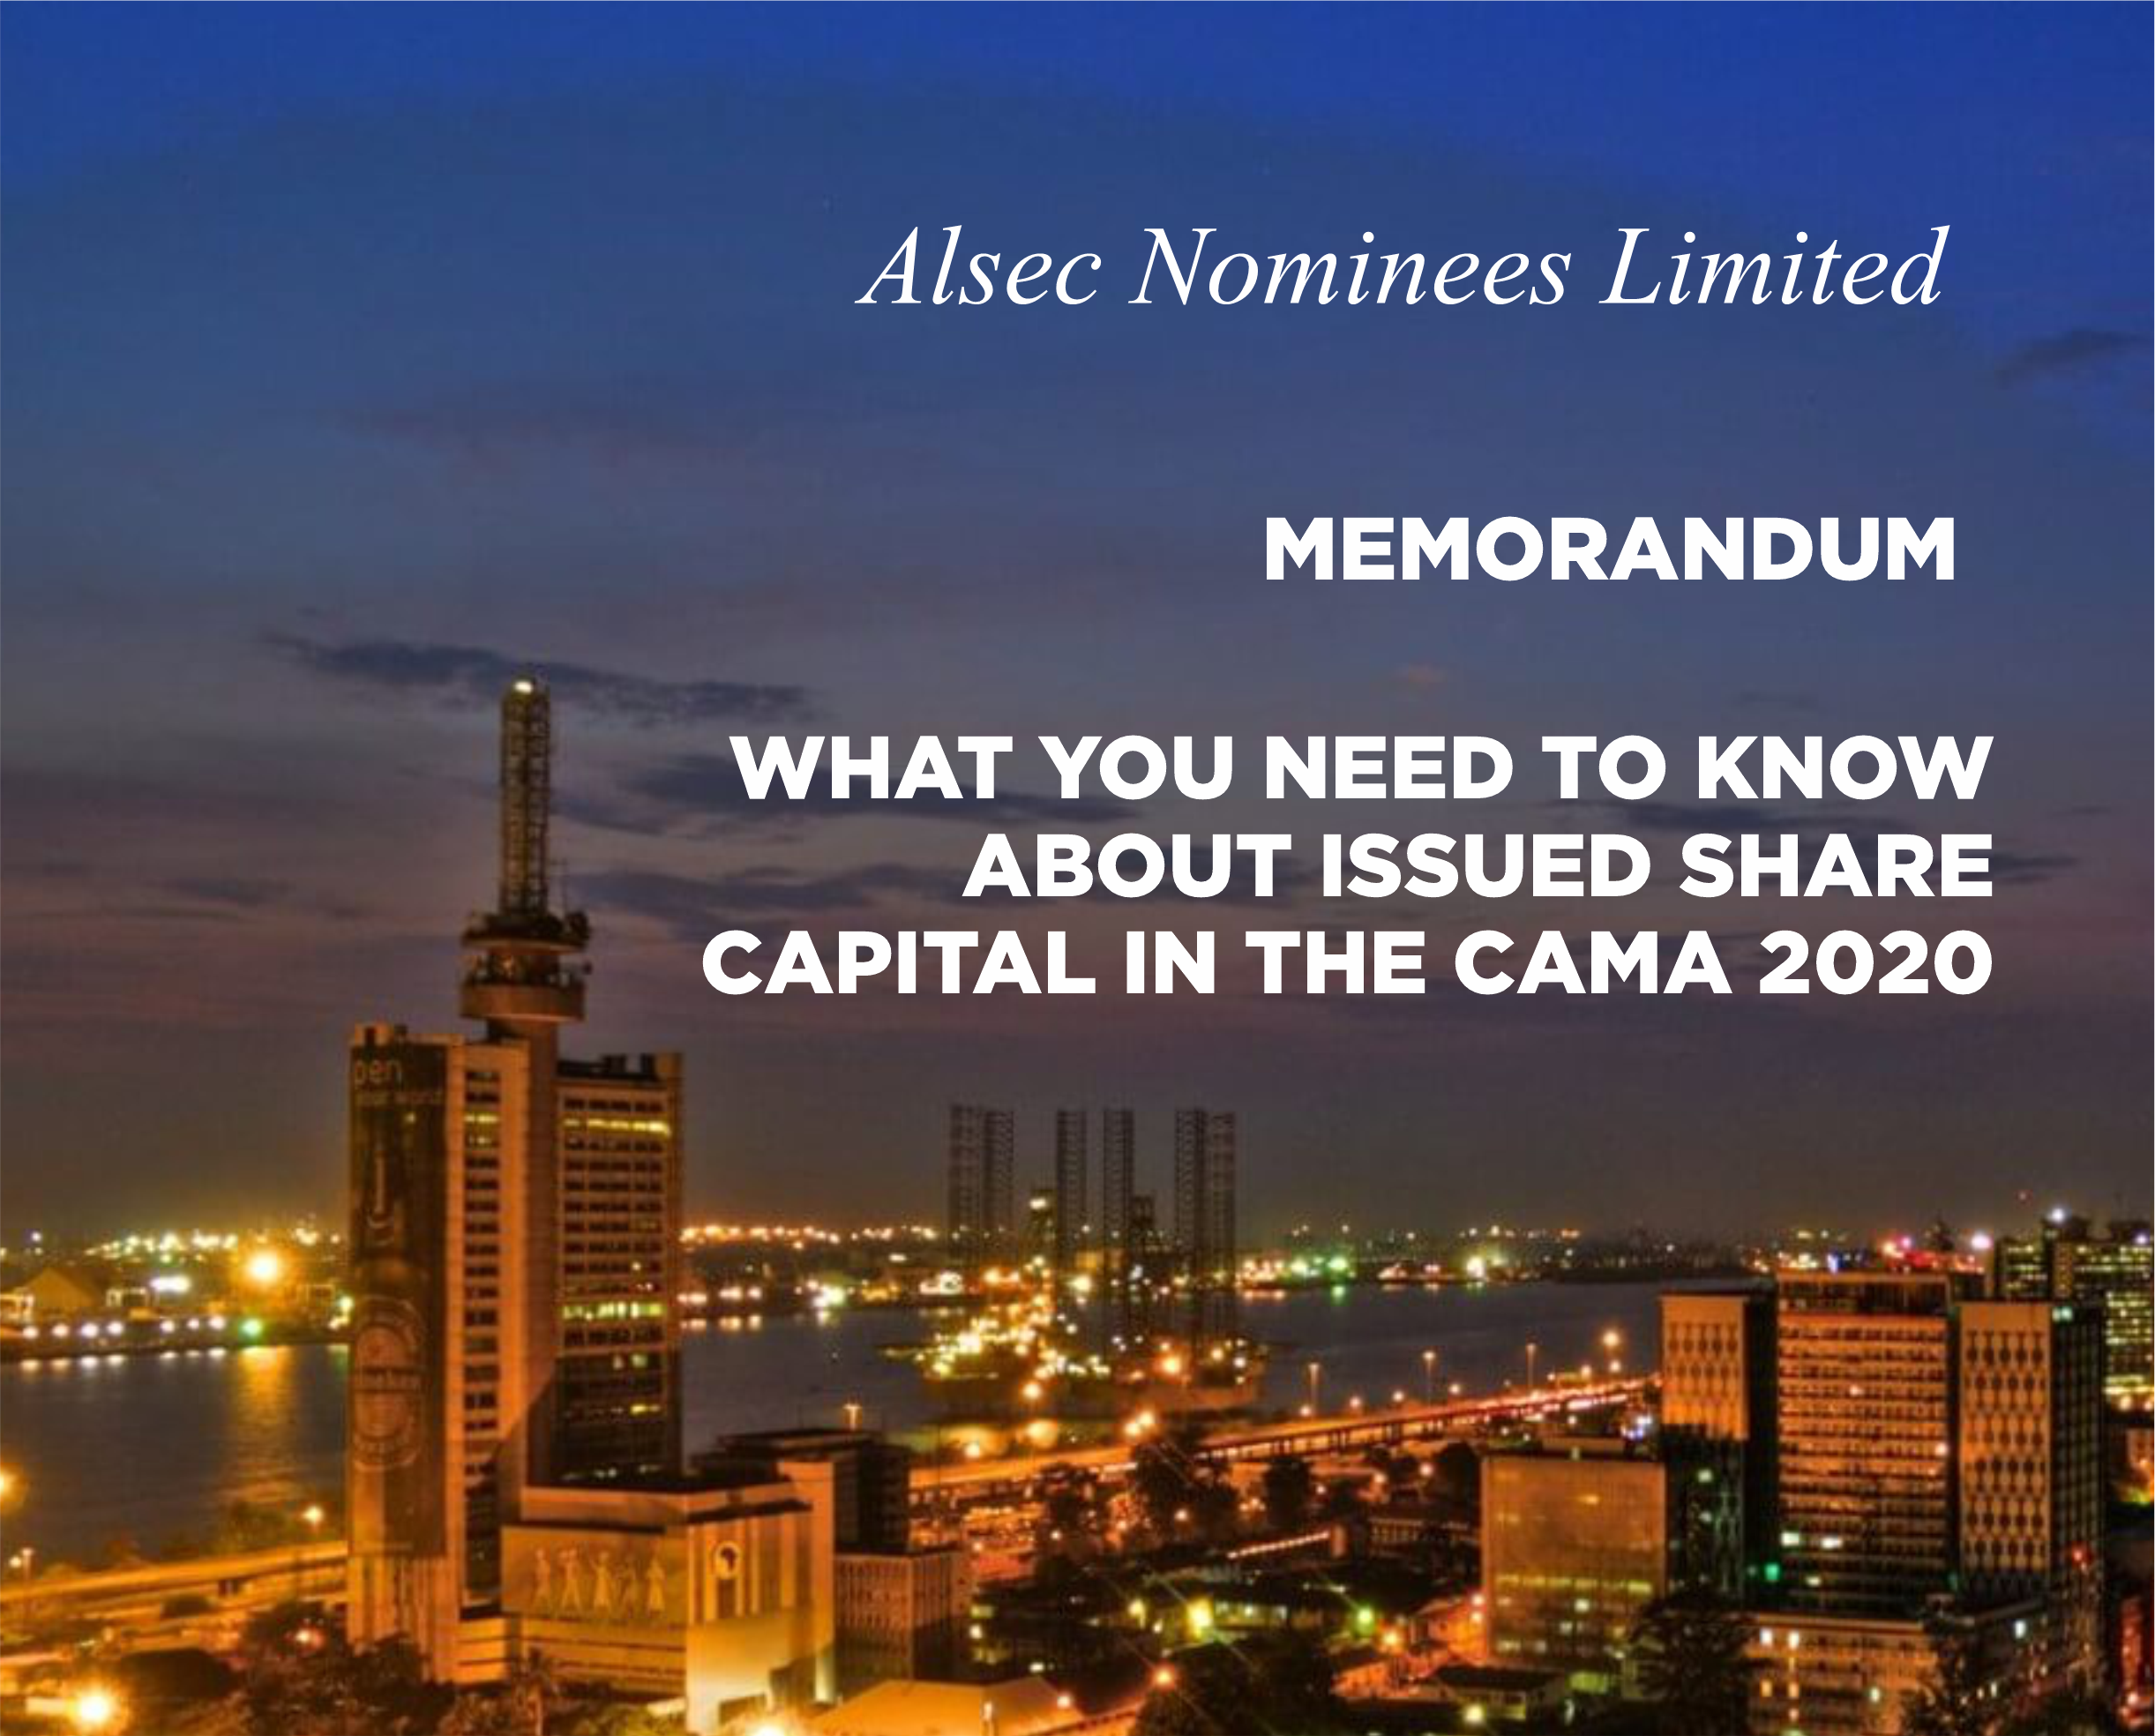 WHAT YOU NEED TO KNOW ABOUT ISSUED SHARE CAPITAL IN THE CAMA 2020